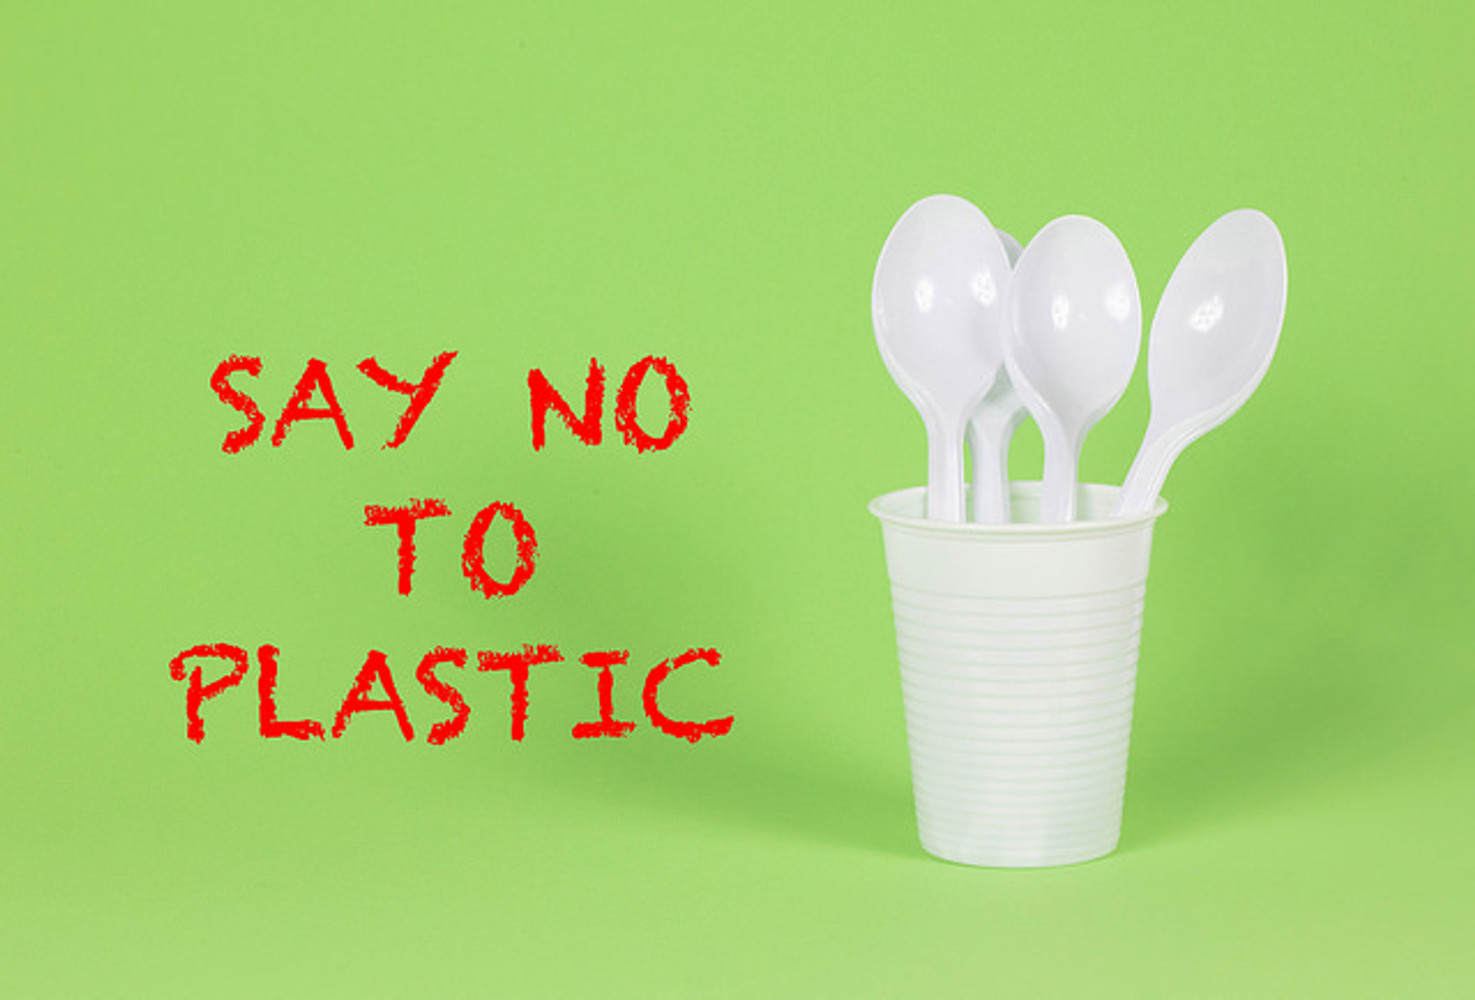 Reduce the plastic in your life